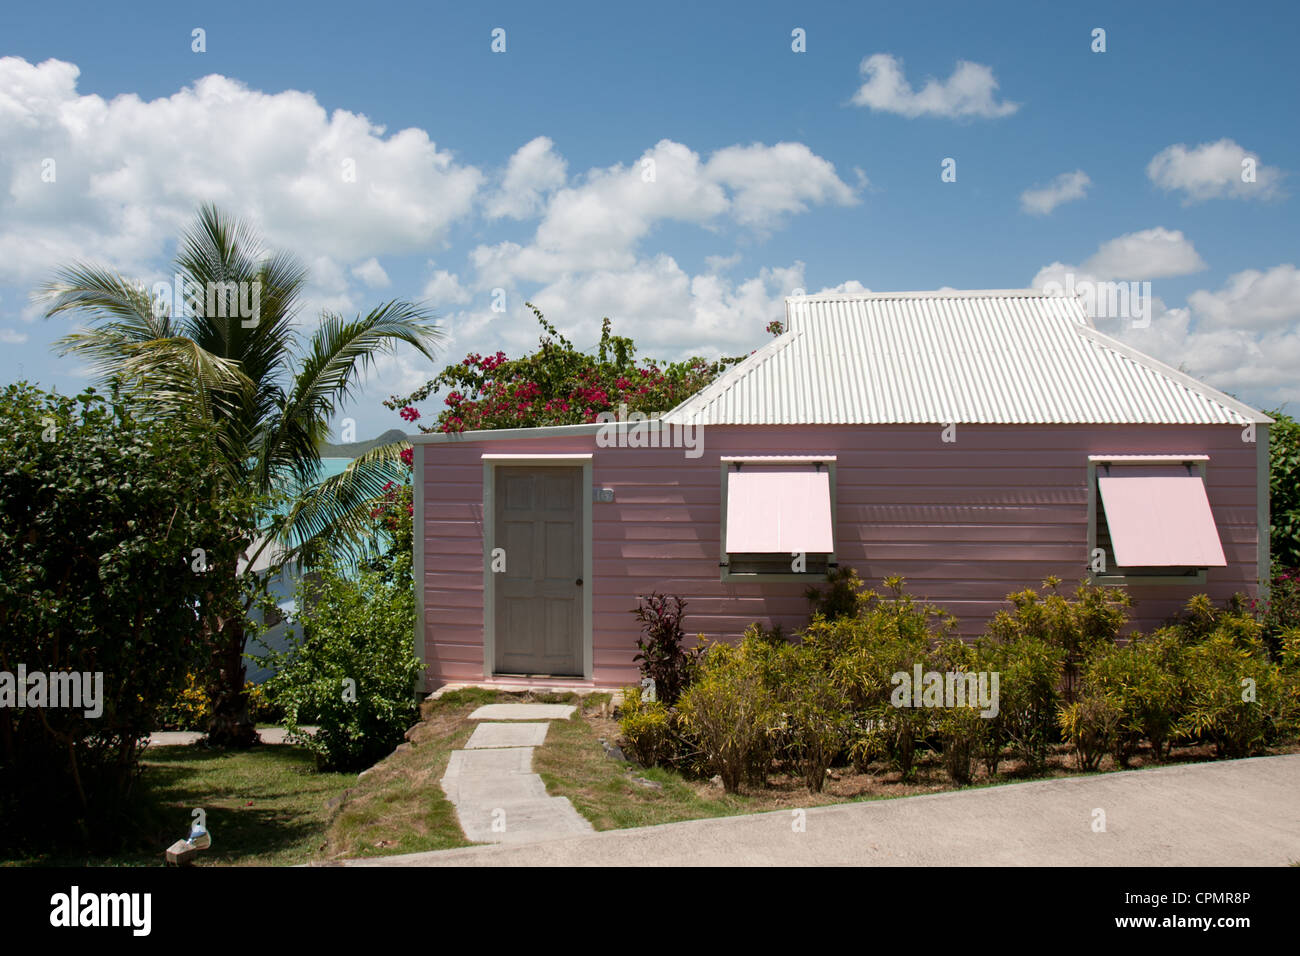 Good Accommodation Caribbean Home - an-example-of-holiday-accommodation-in-a-caribbean-resort-showing-CPMR8P  Graphic_701340.jpg